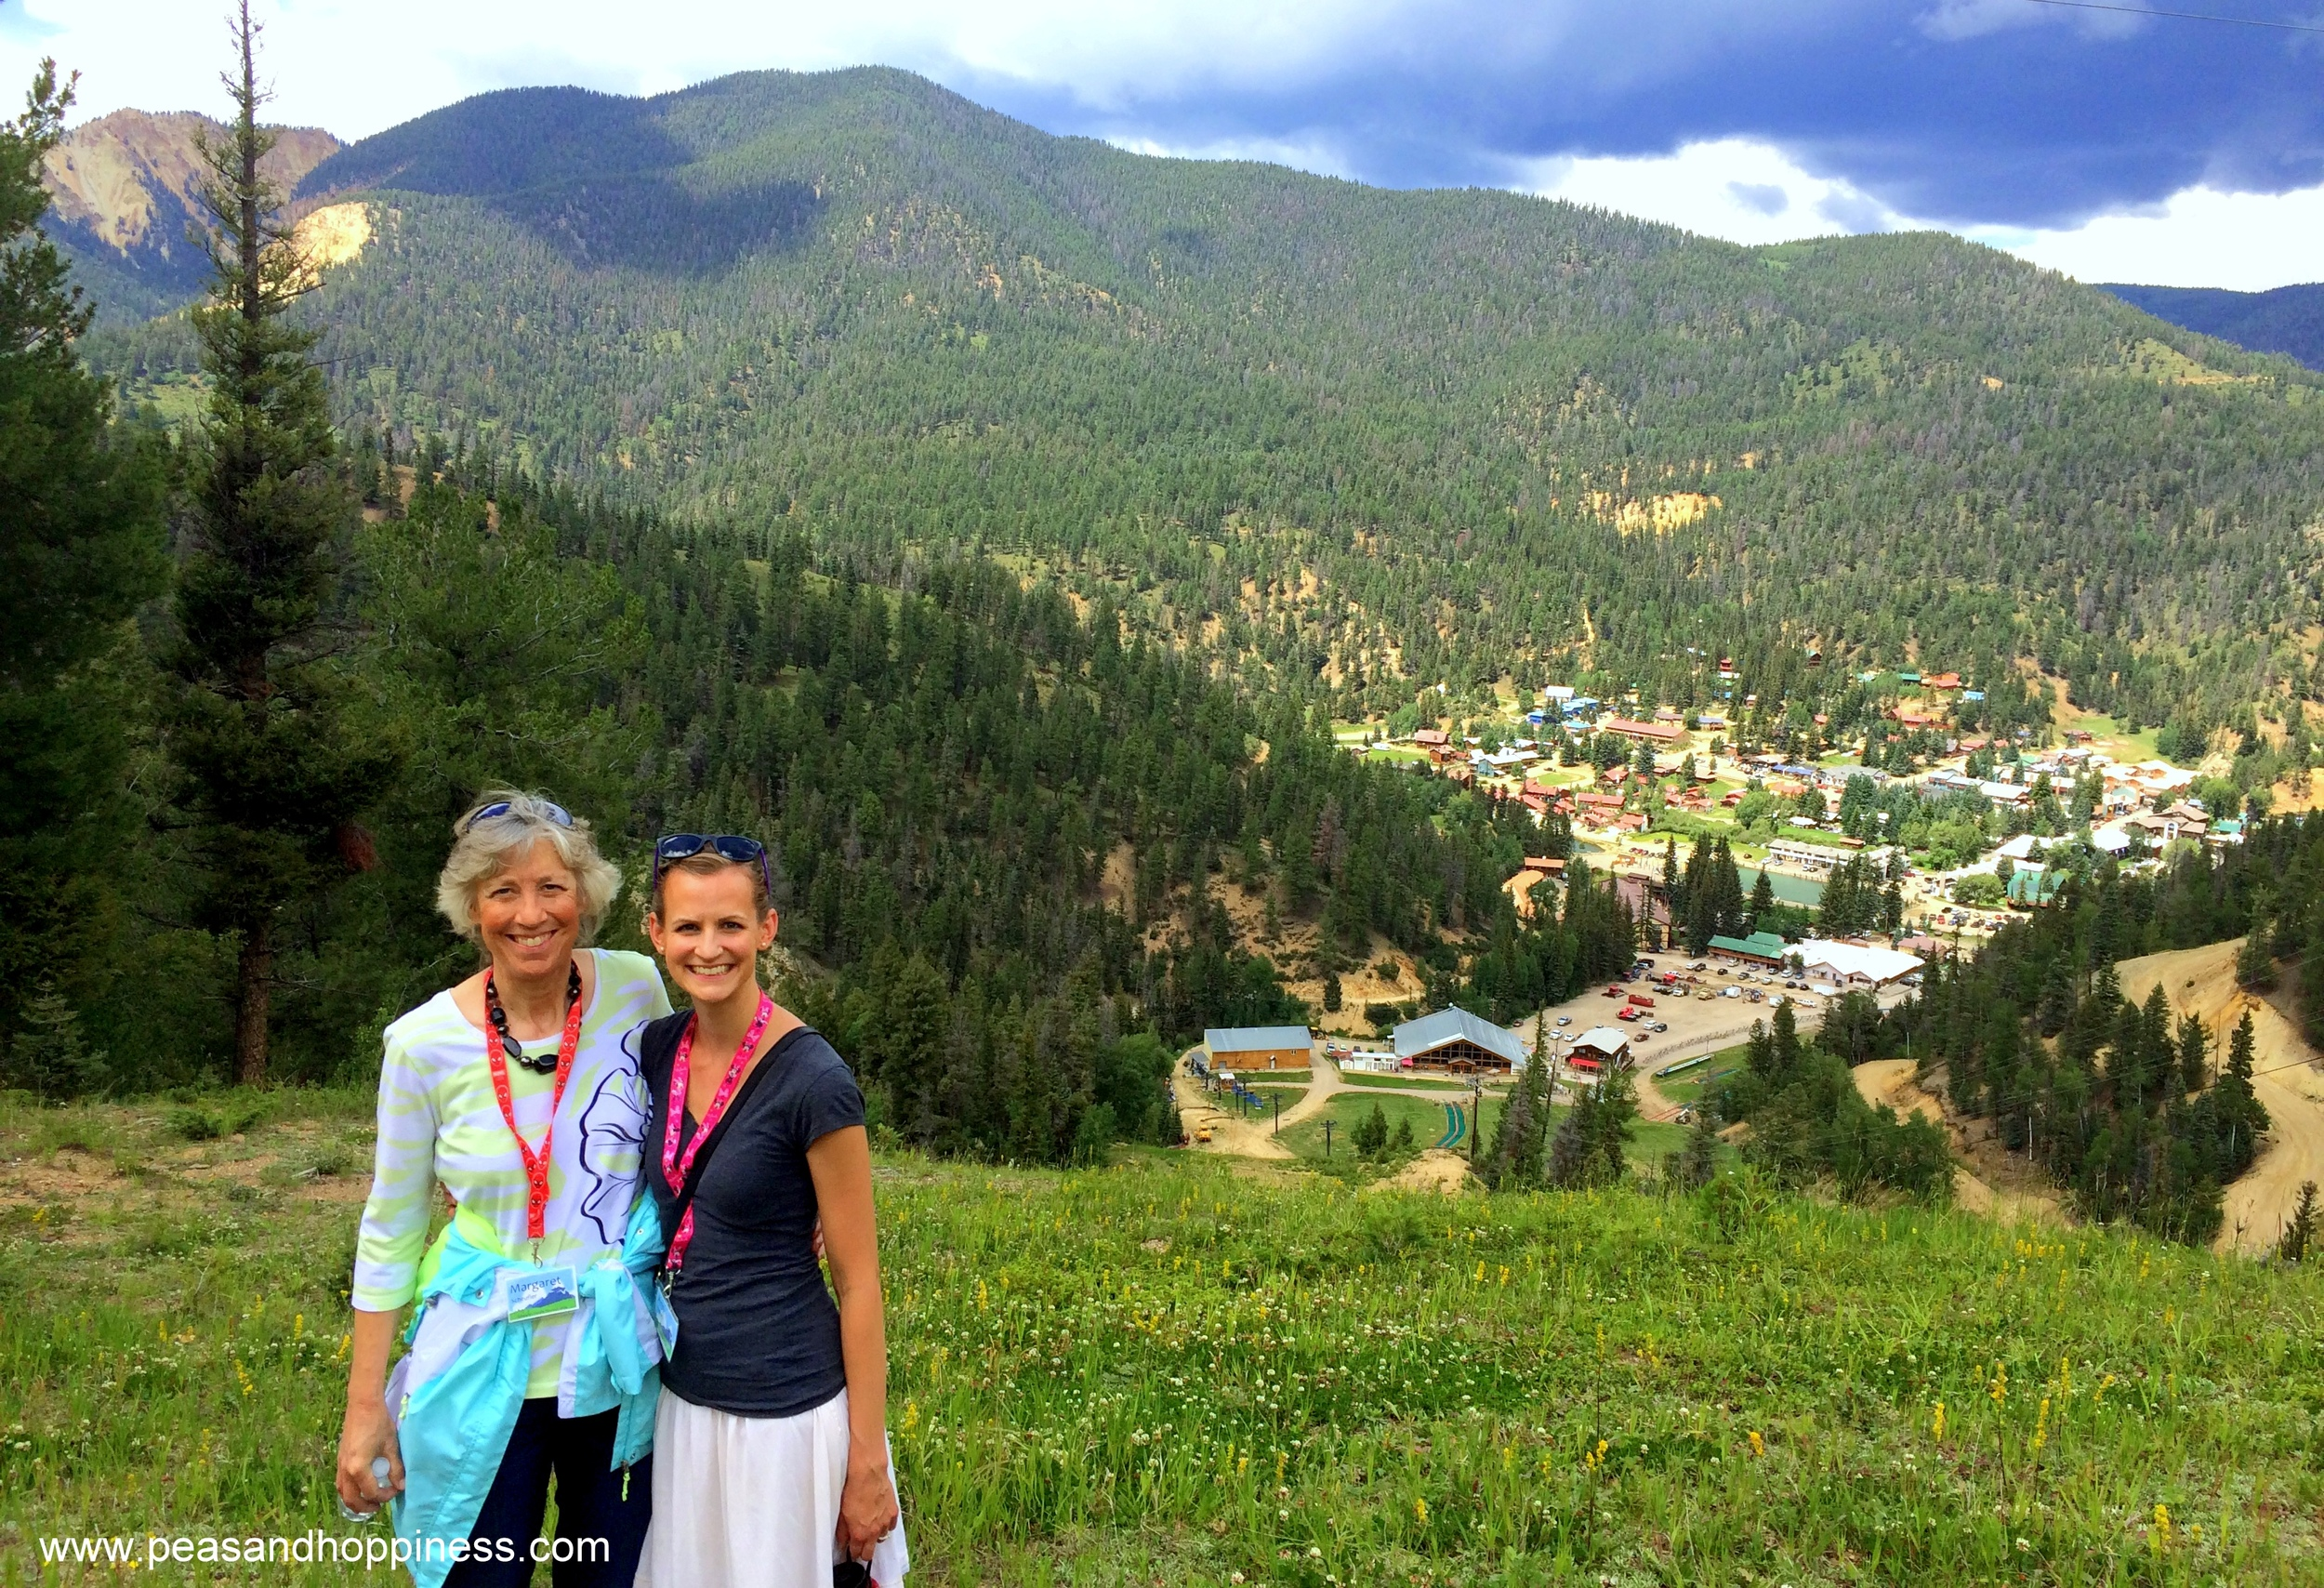 I love being active on family vacations! Mom and me climbing at the Scheufler Family Reunion in New Mexico.